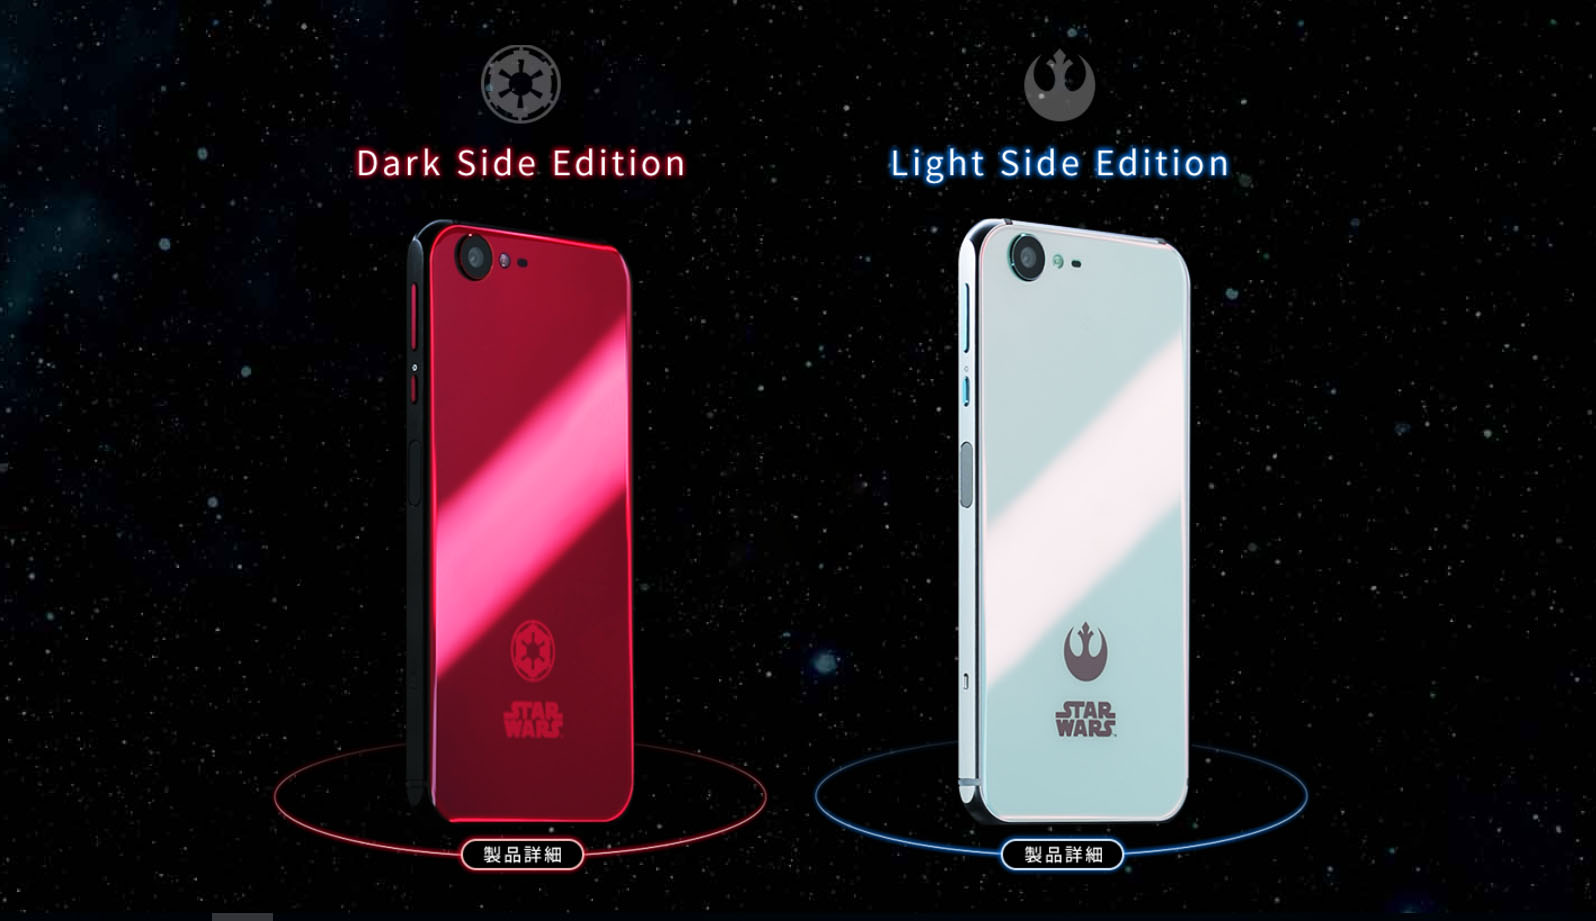 star-wars-mobile-from-softbank-sharp-for-rogue-one-5